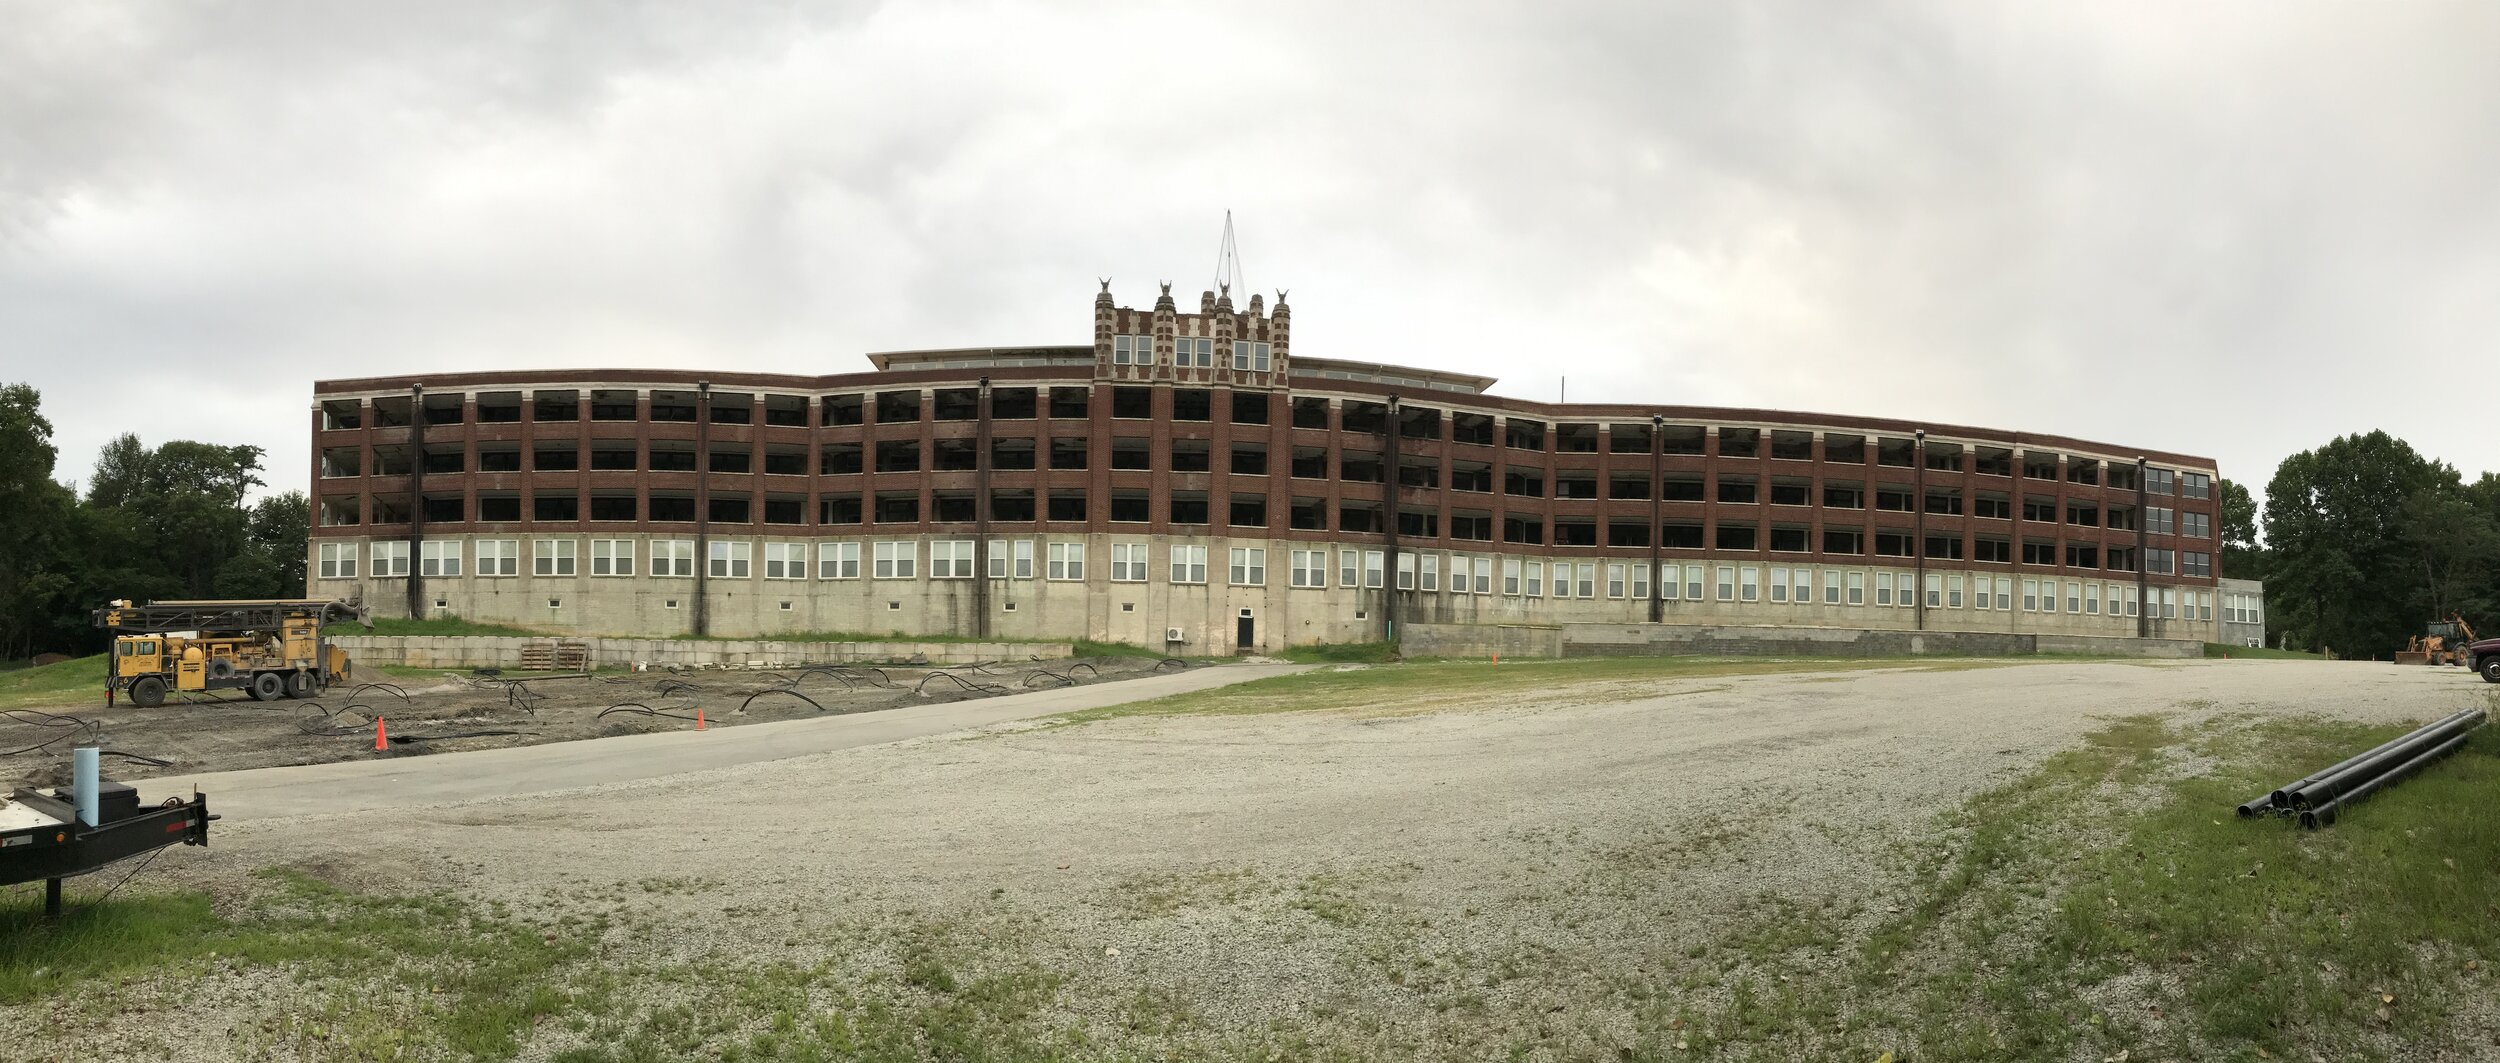 The back of Waverly Hills Sanatorium, positioned so that patients' beds could be wheeled onto the balconies where they could catch the fresh breeze from the south/southwest.